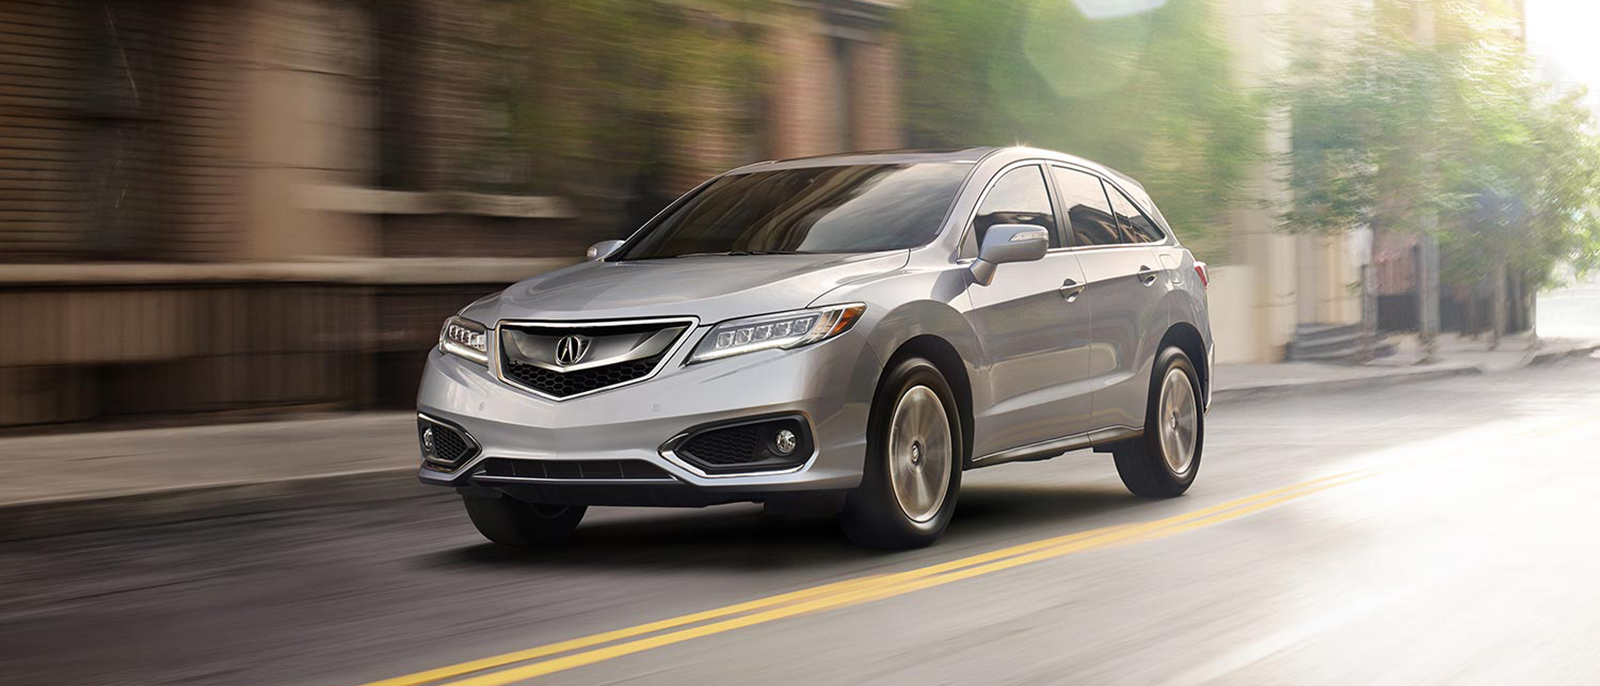 Is the RDX the Best Luxury Crossover SUV?